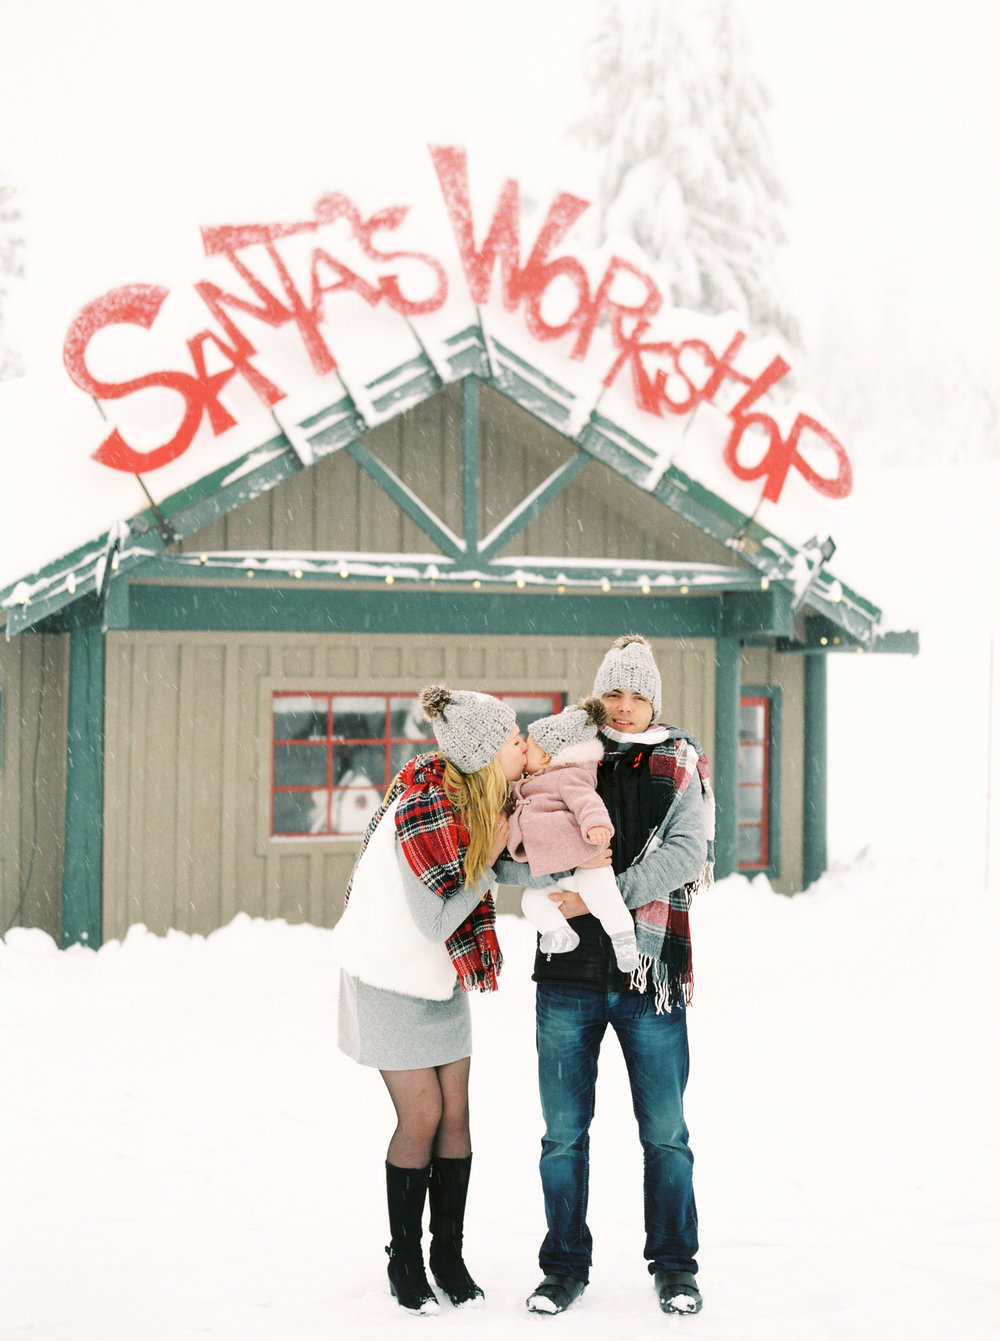 Family Winter Photoshoot on Grouse Mountain